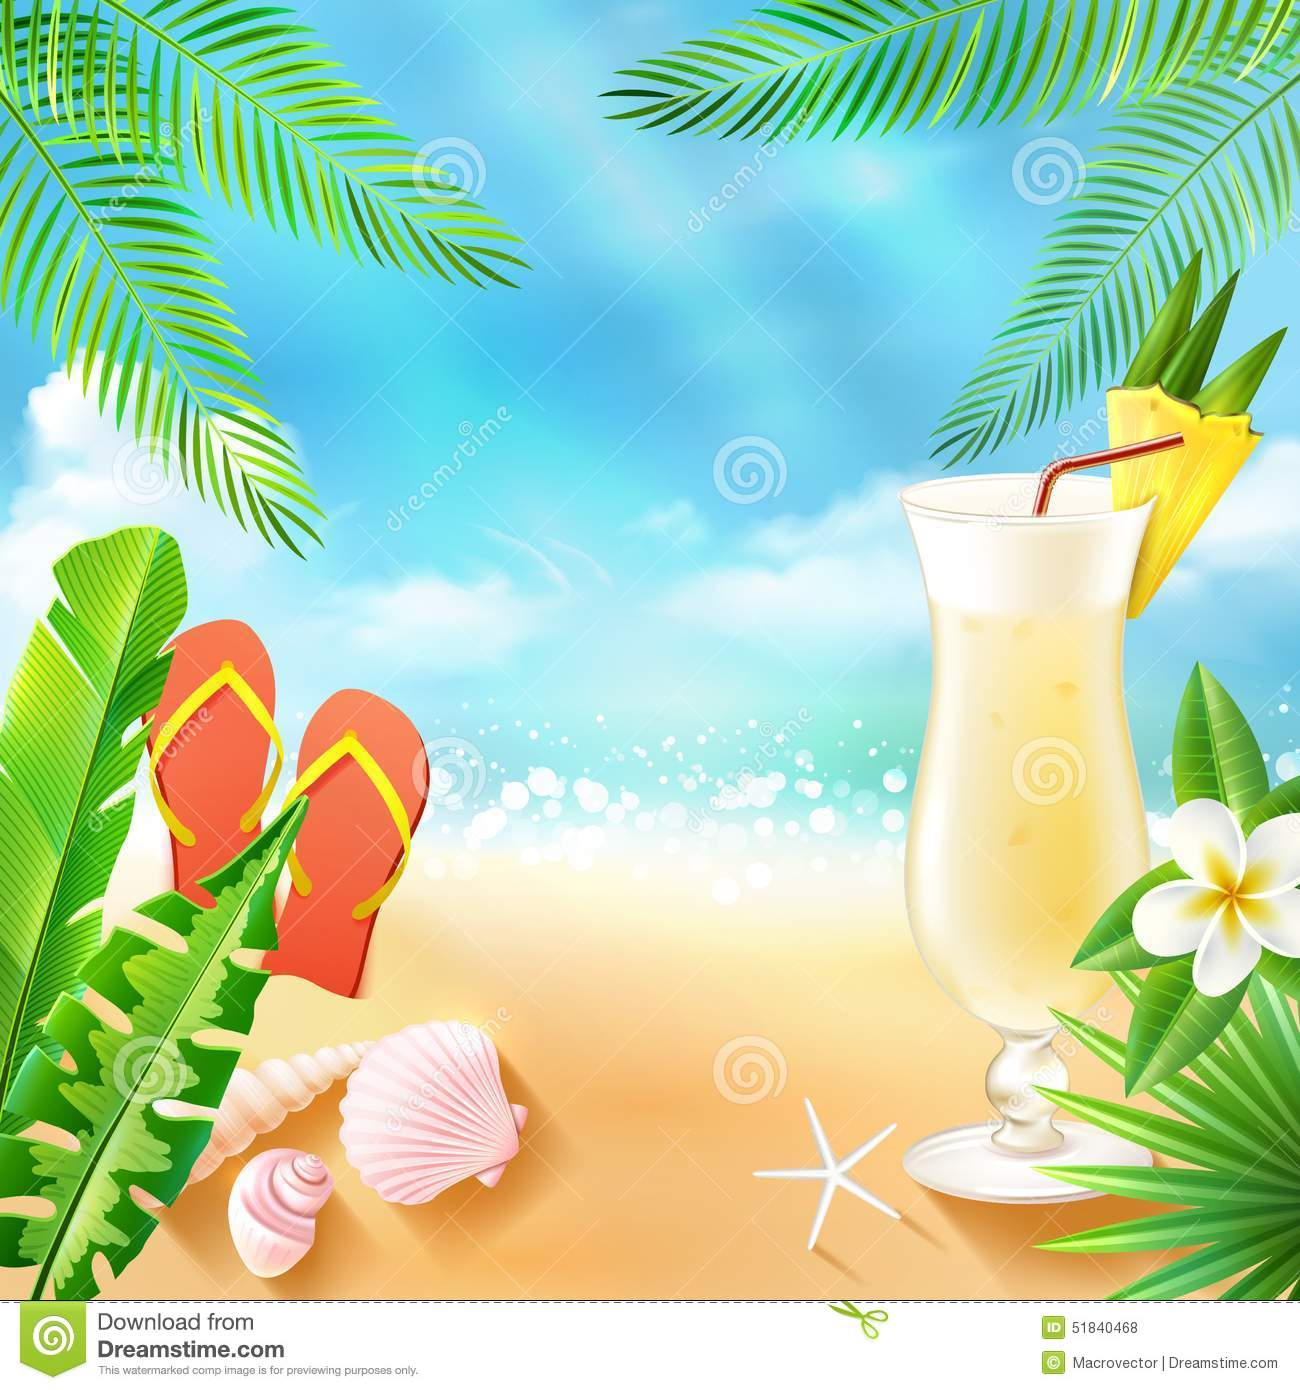 Tropical Sea Background Stock Vector Image 51840468